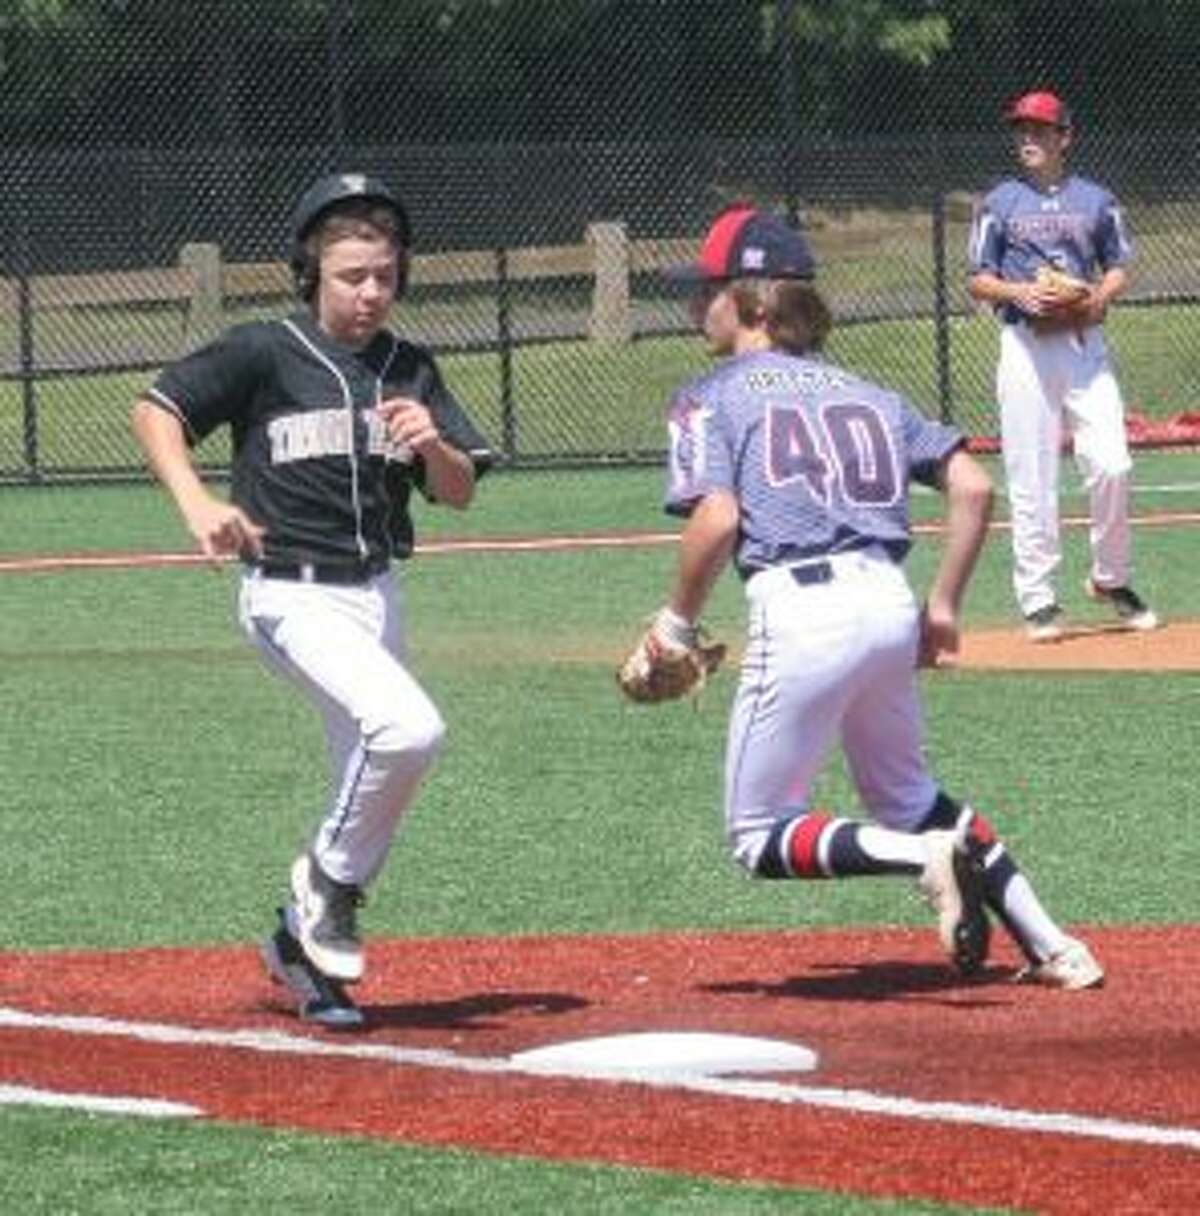 Eric Osterberg hustles down the line to reach base on a wide throw.